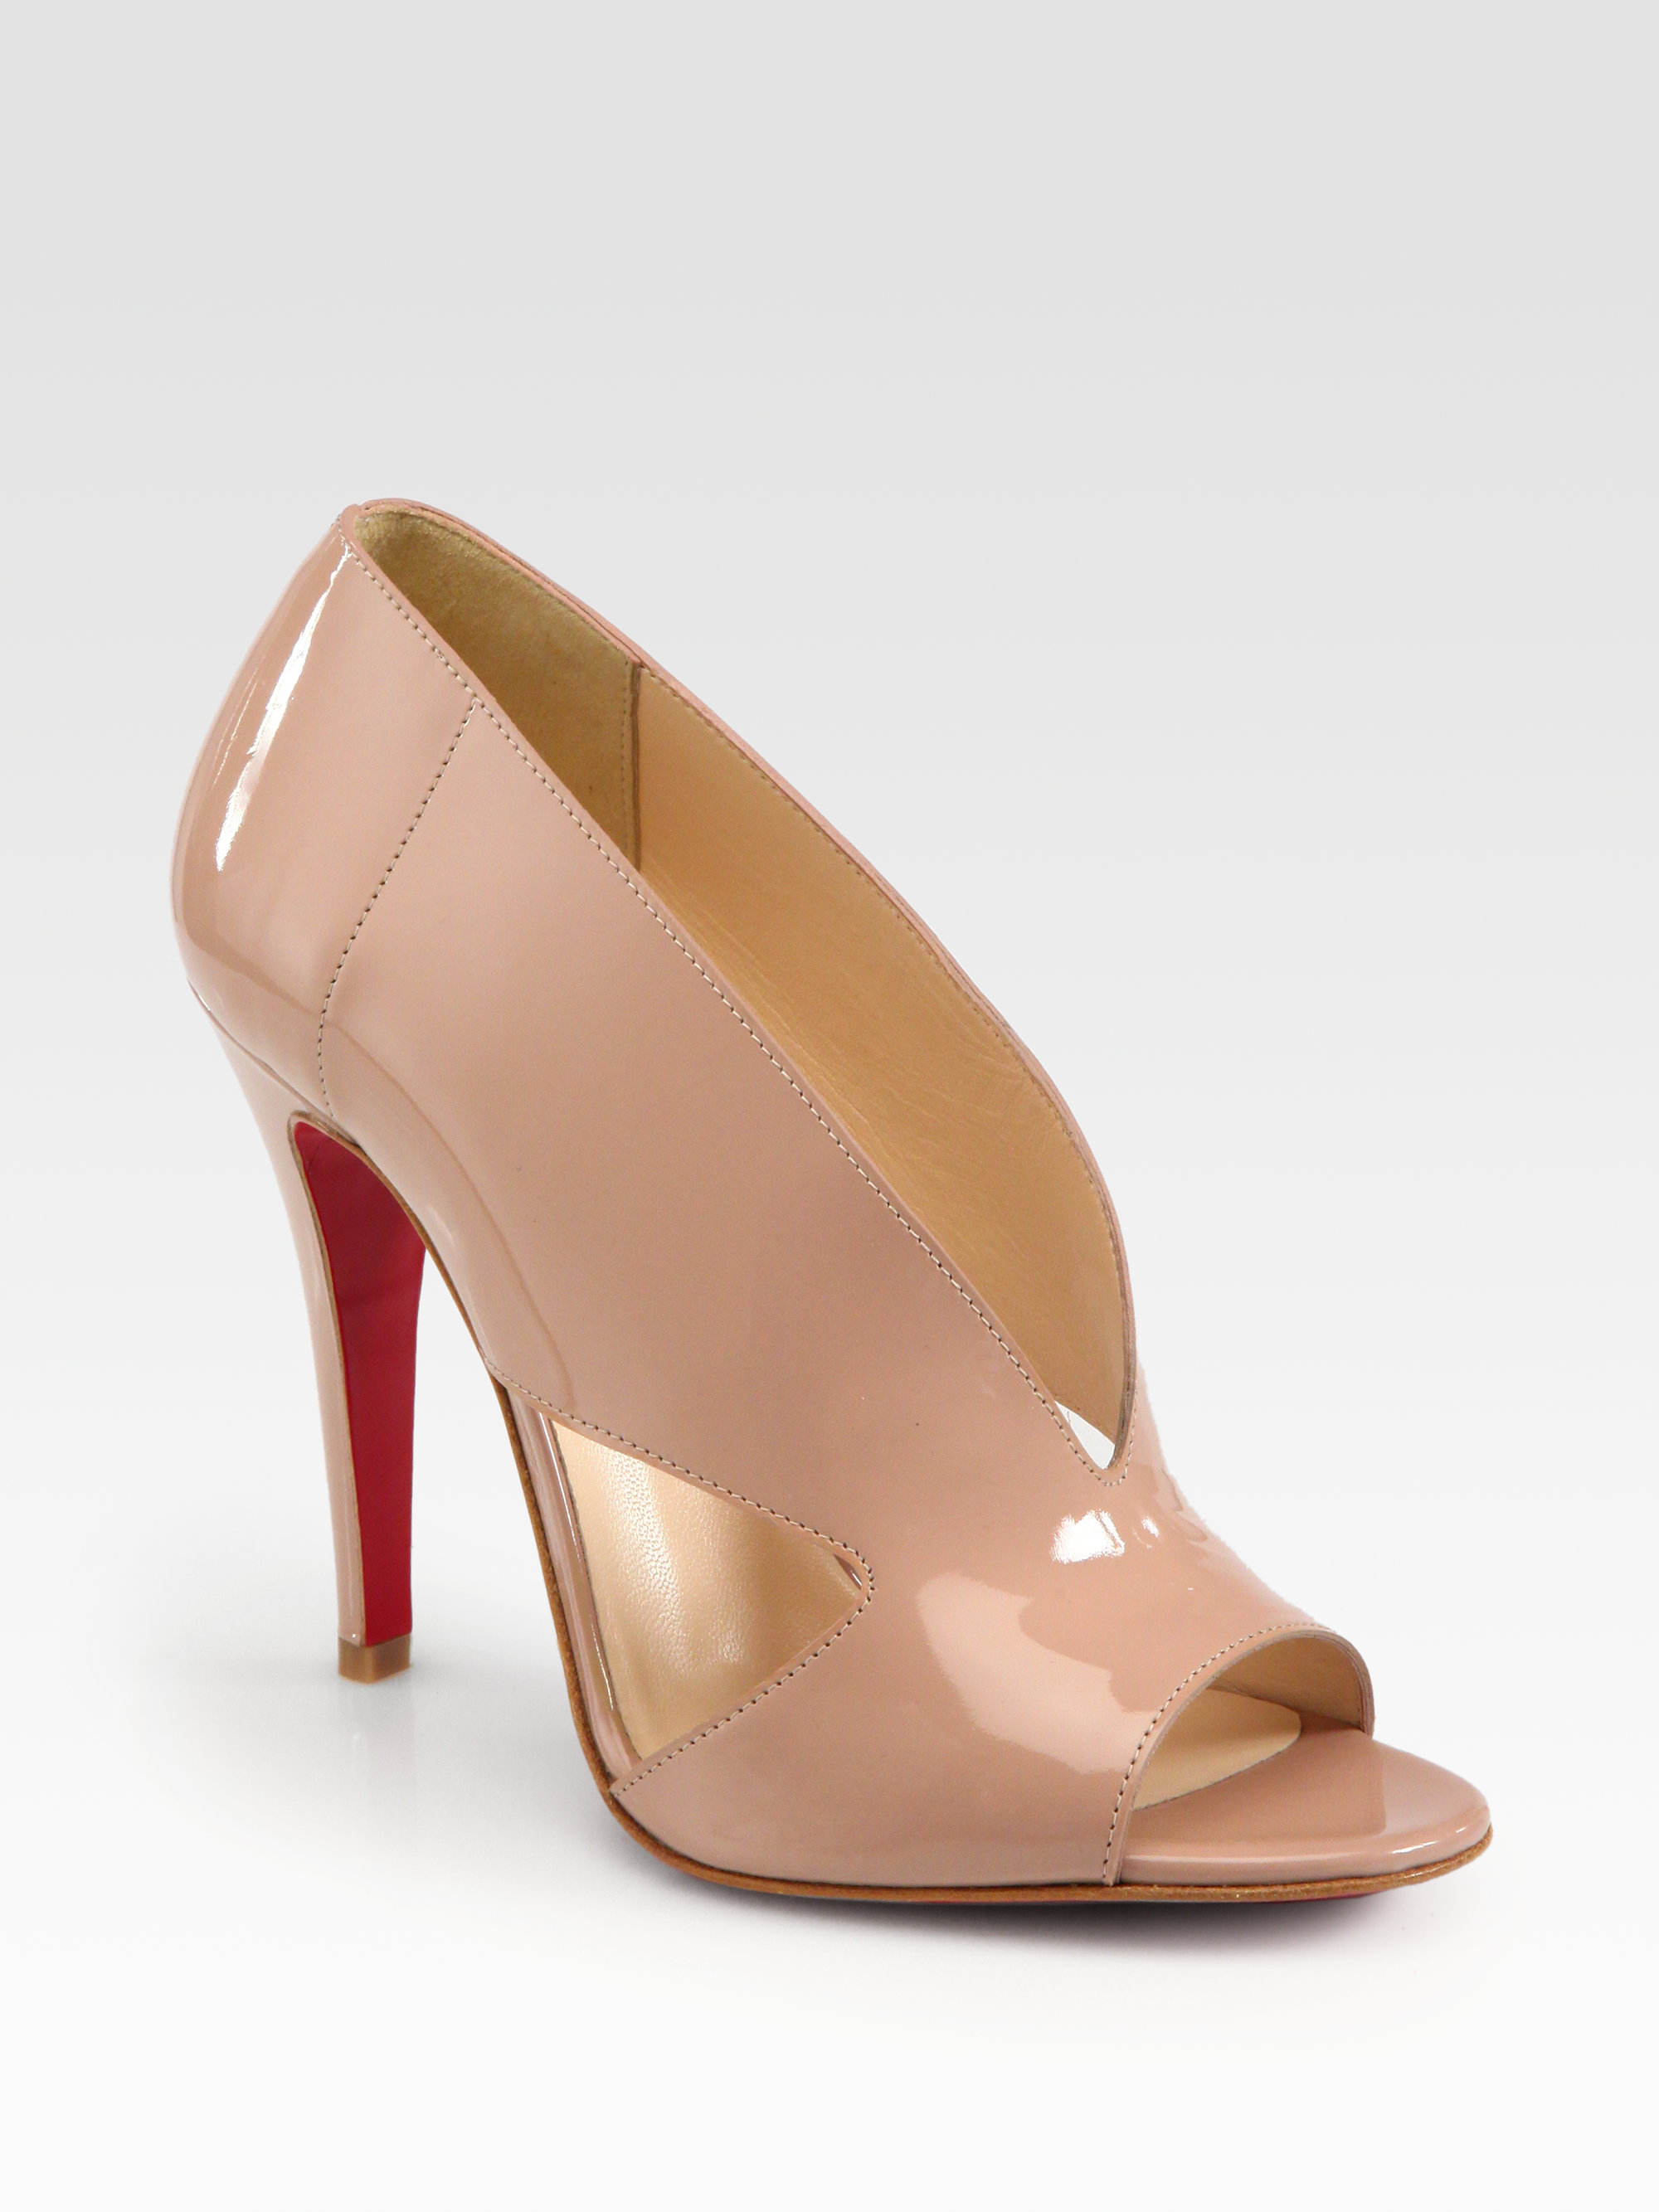 christian louboutin Ever Beige Patent Leather - Bbridges